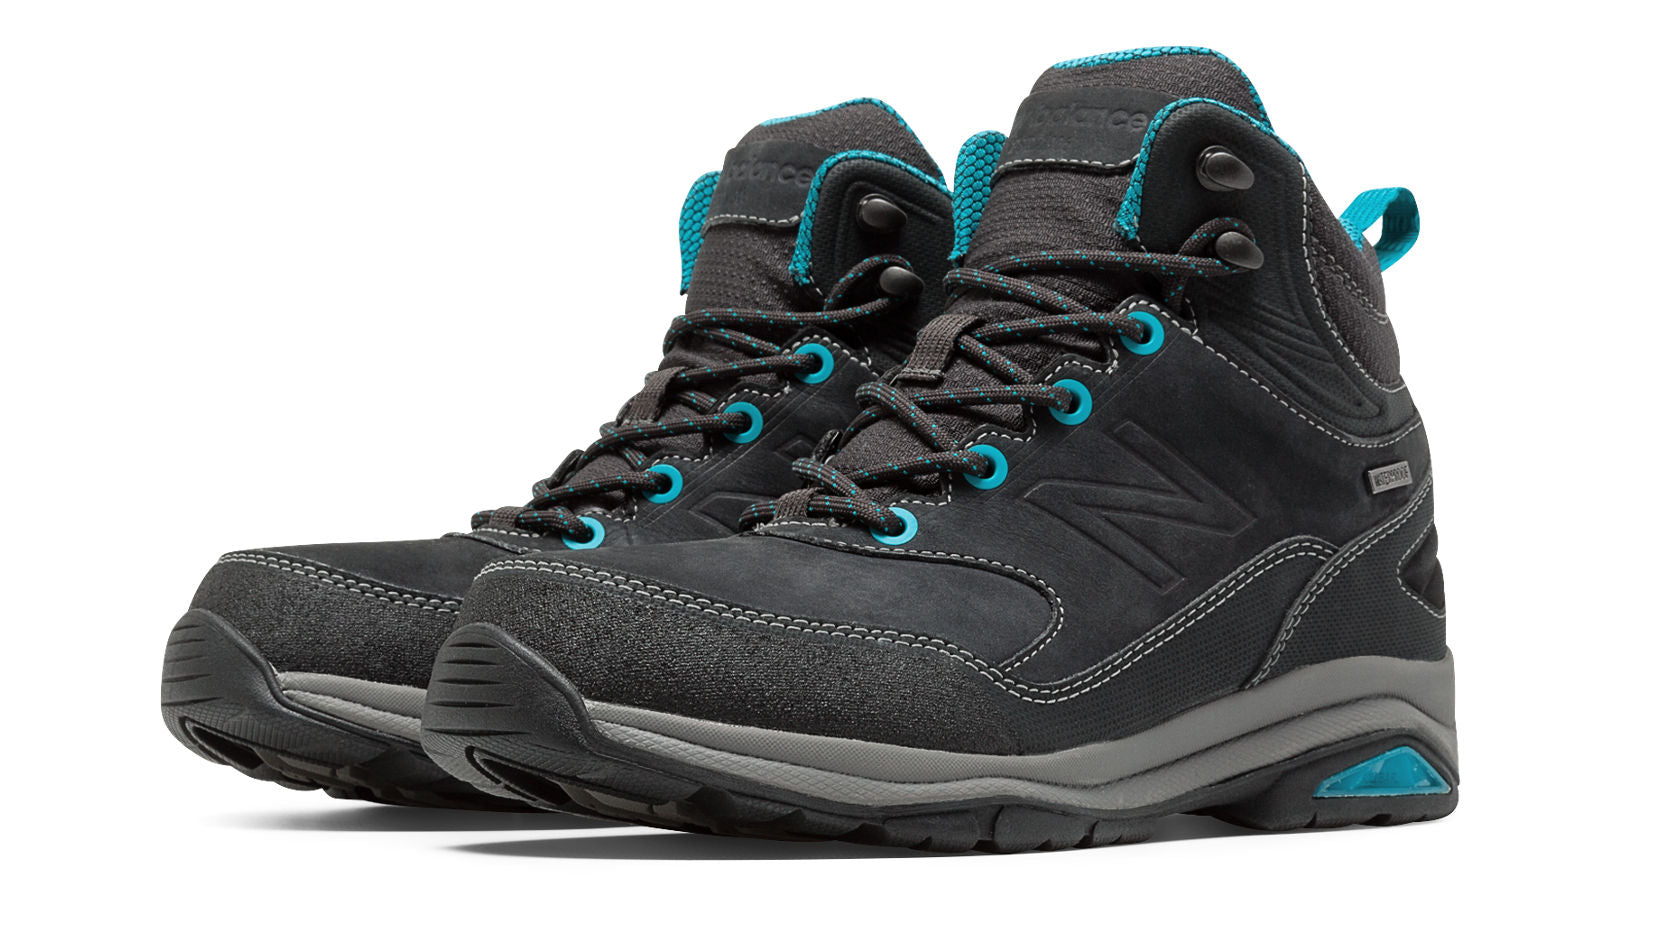 Women's New Balance 1400 (Winter Boot) - women's hiking - Sports 4